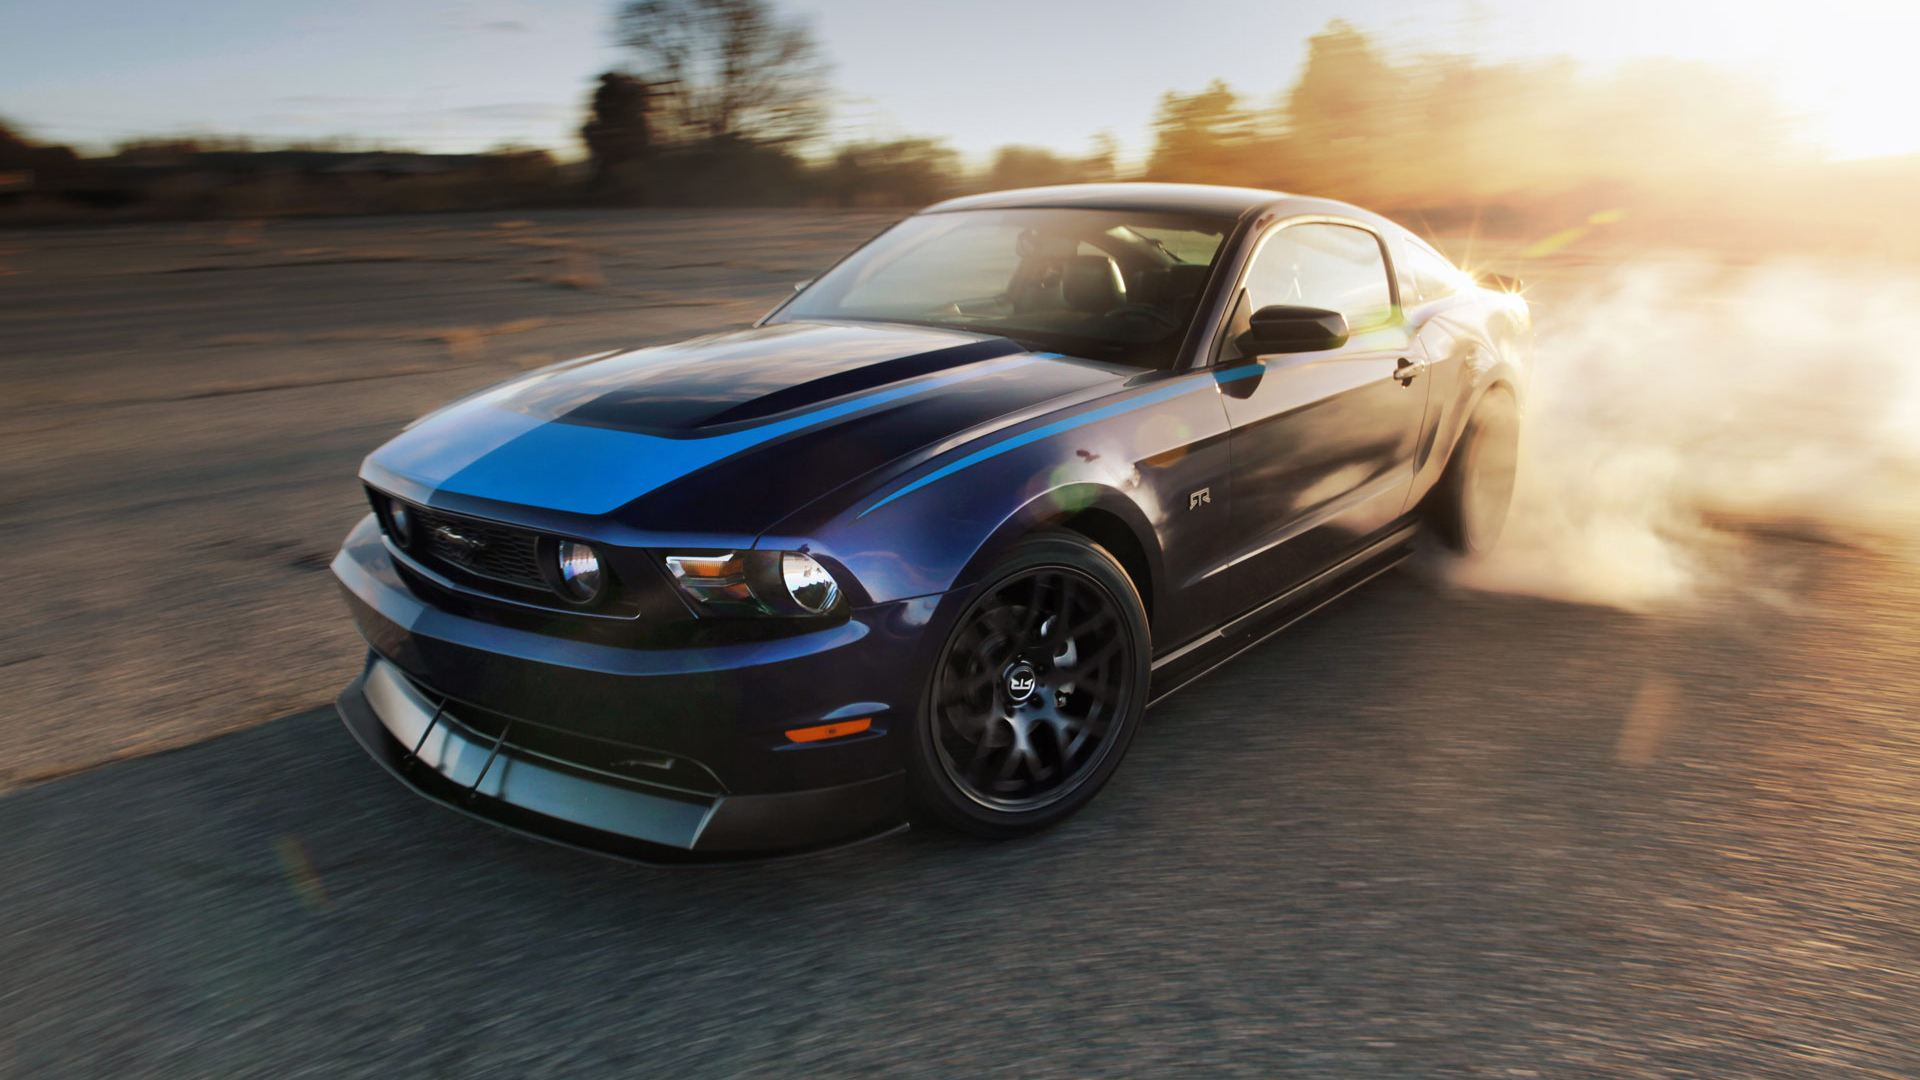 ... Ford Mustang Wallpapers): 1920 × 1080